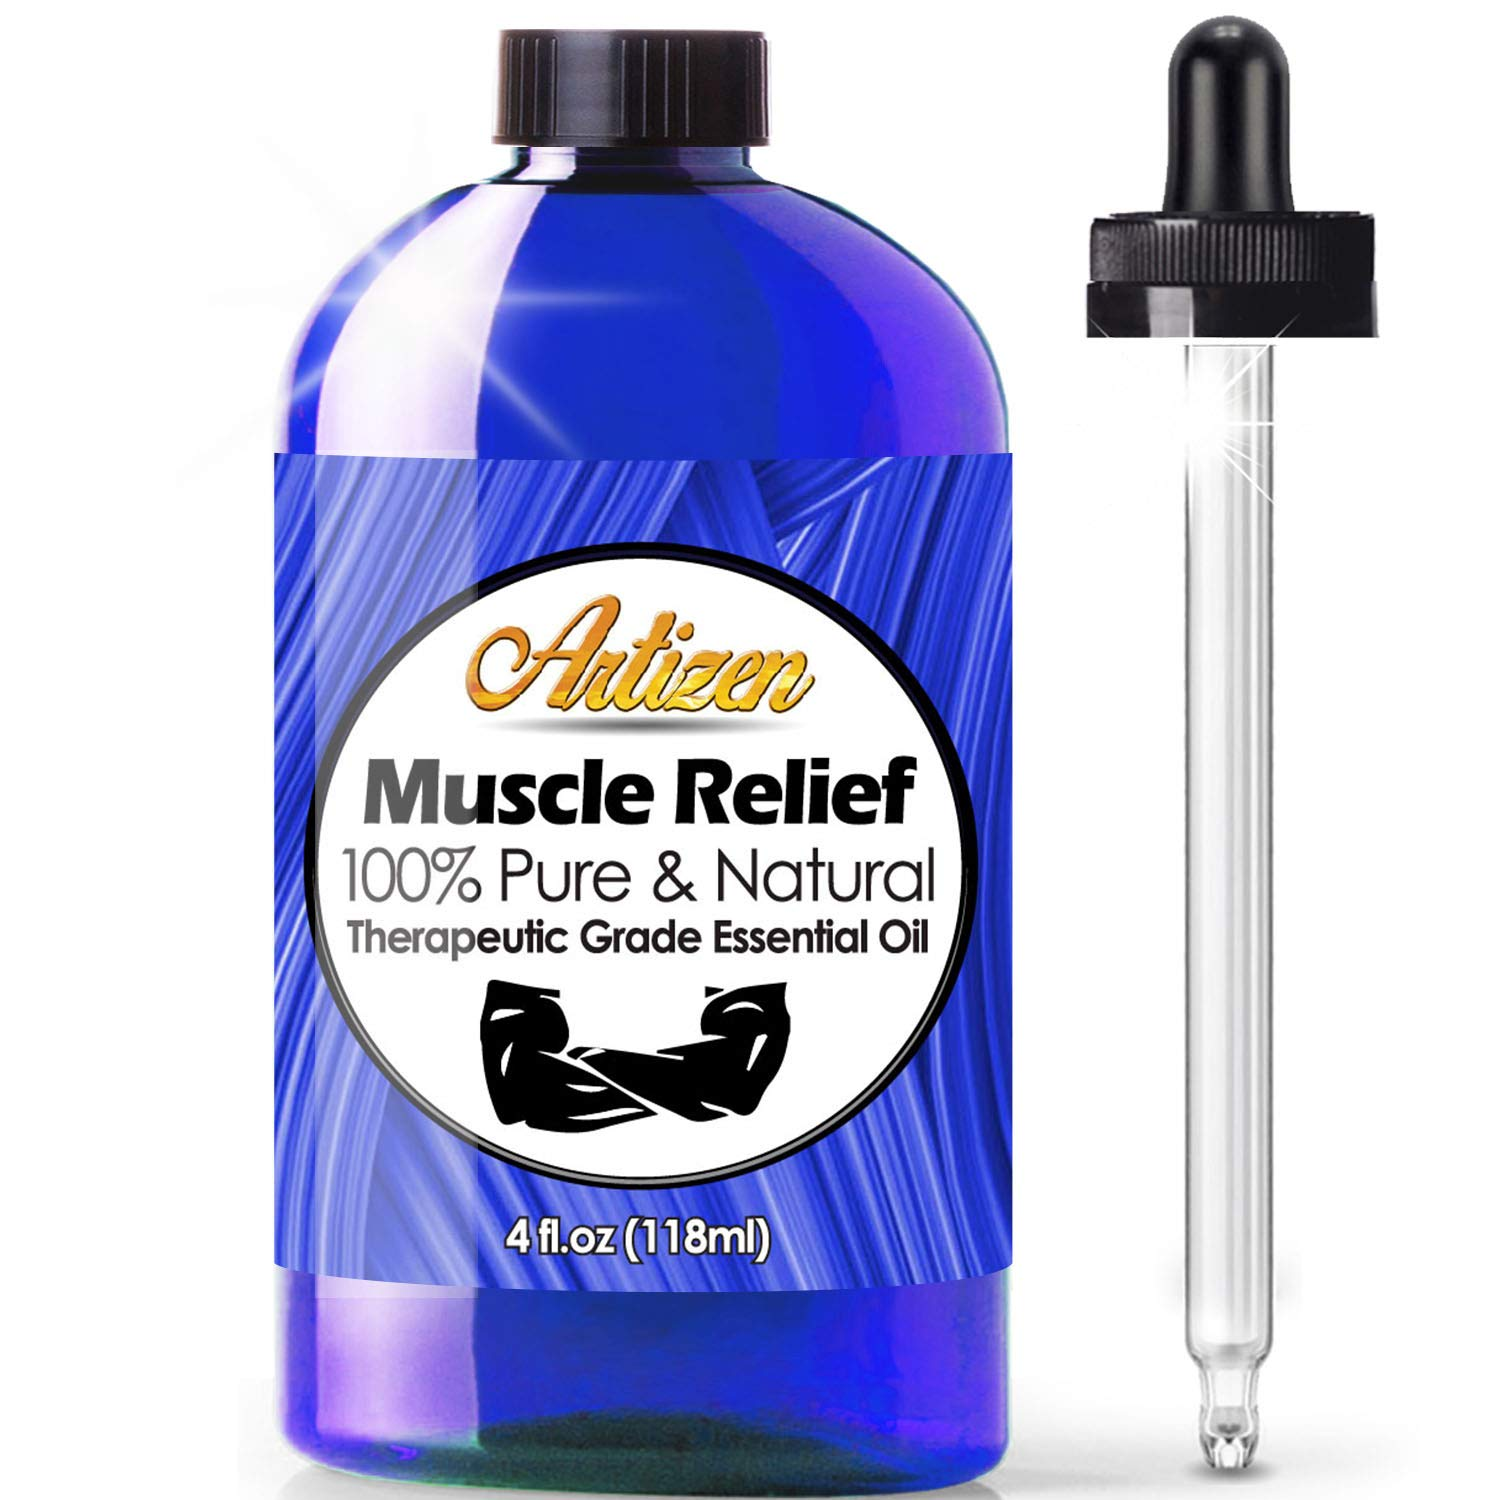 Artizen Muscle Relief Blend Essential Oil (100% Pure & Natural - UNDILUTED) Therapeutic Grade - Huge 4oz Bottle - Perfect for Aromatherapy, Relaxation, Skin Therapy & More!